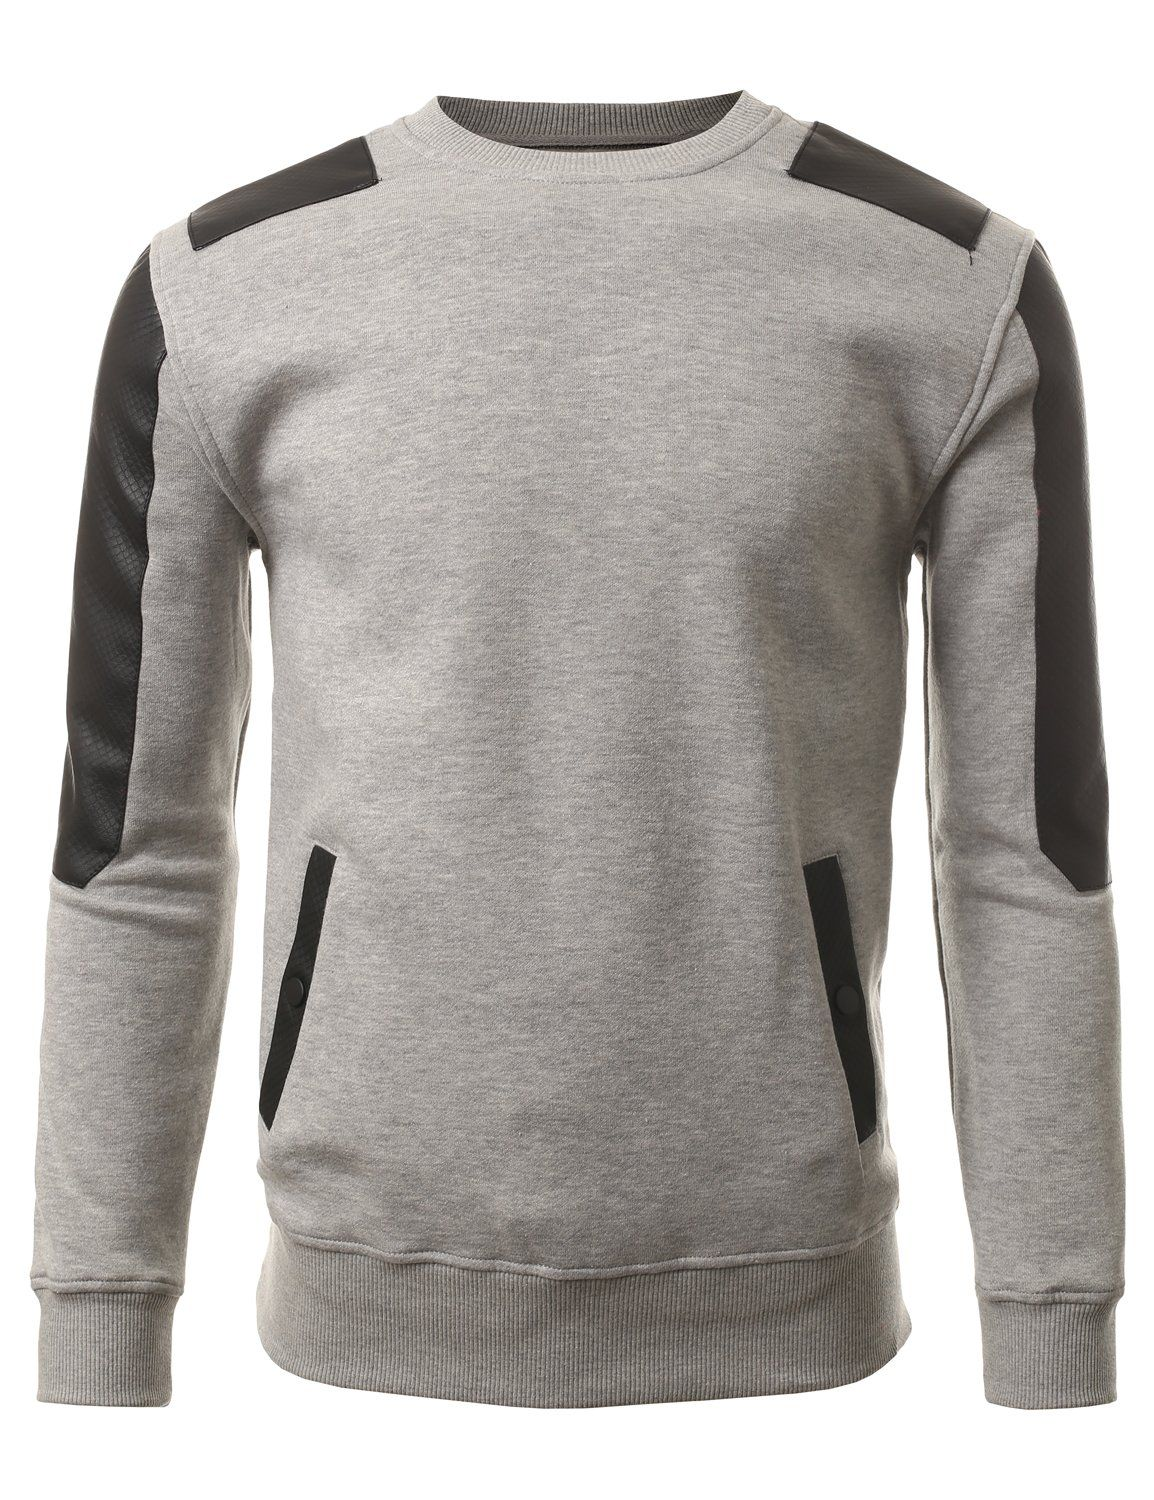 X-Future Men Crew Neck Pullover Knit Long Sleeve Slim Fit Sweater